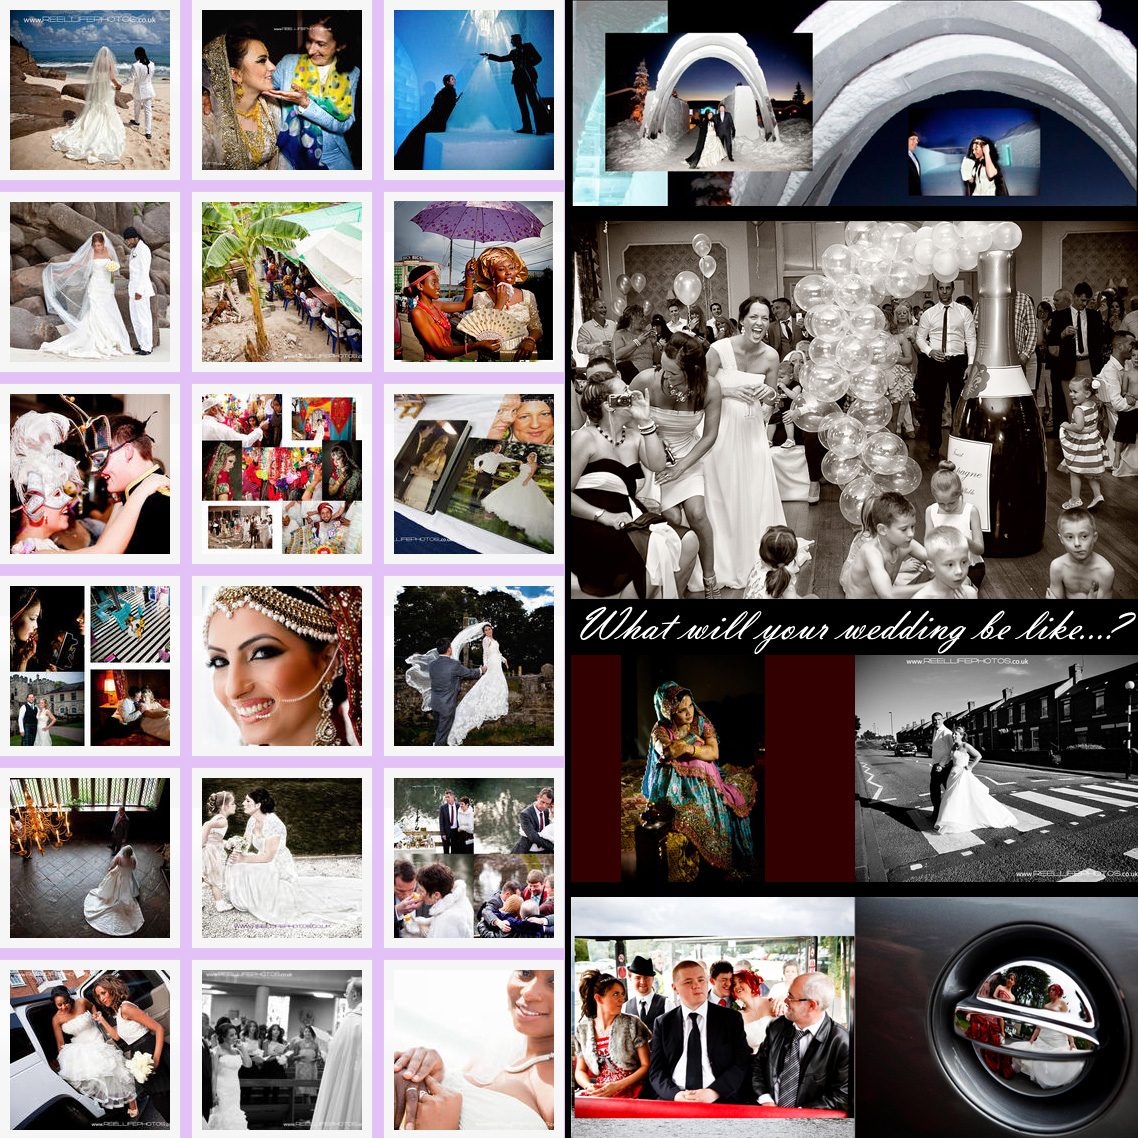 wedding photo montage for storybook